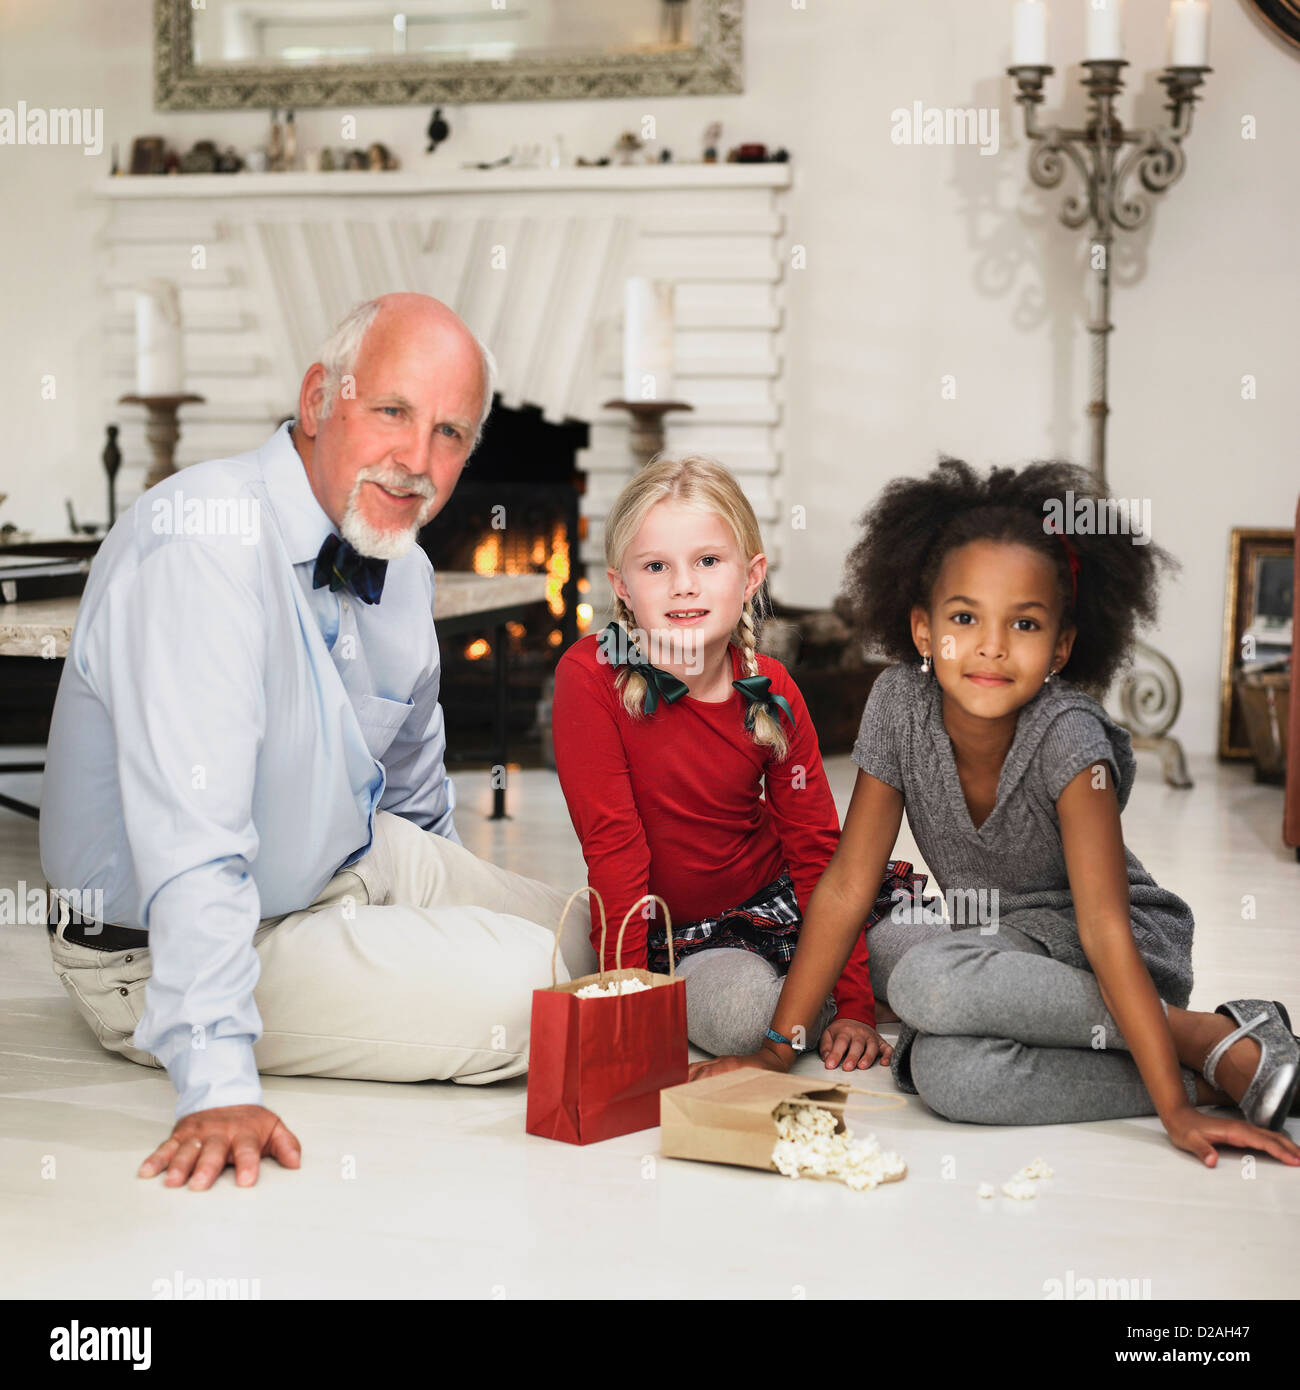 Older Man And Girls With Christmas Gifts Stock Photo 53093383 Alamy